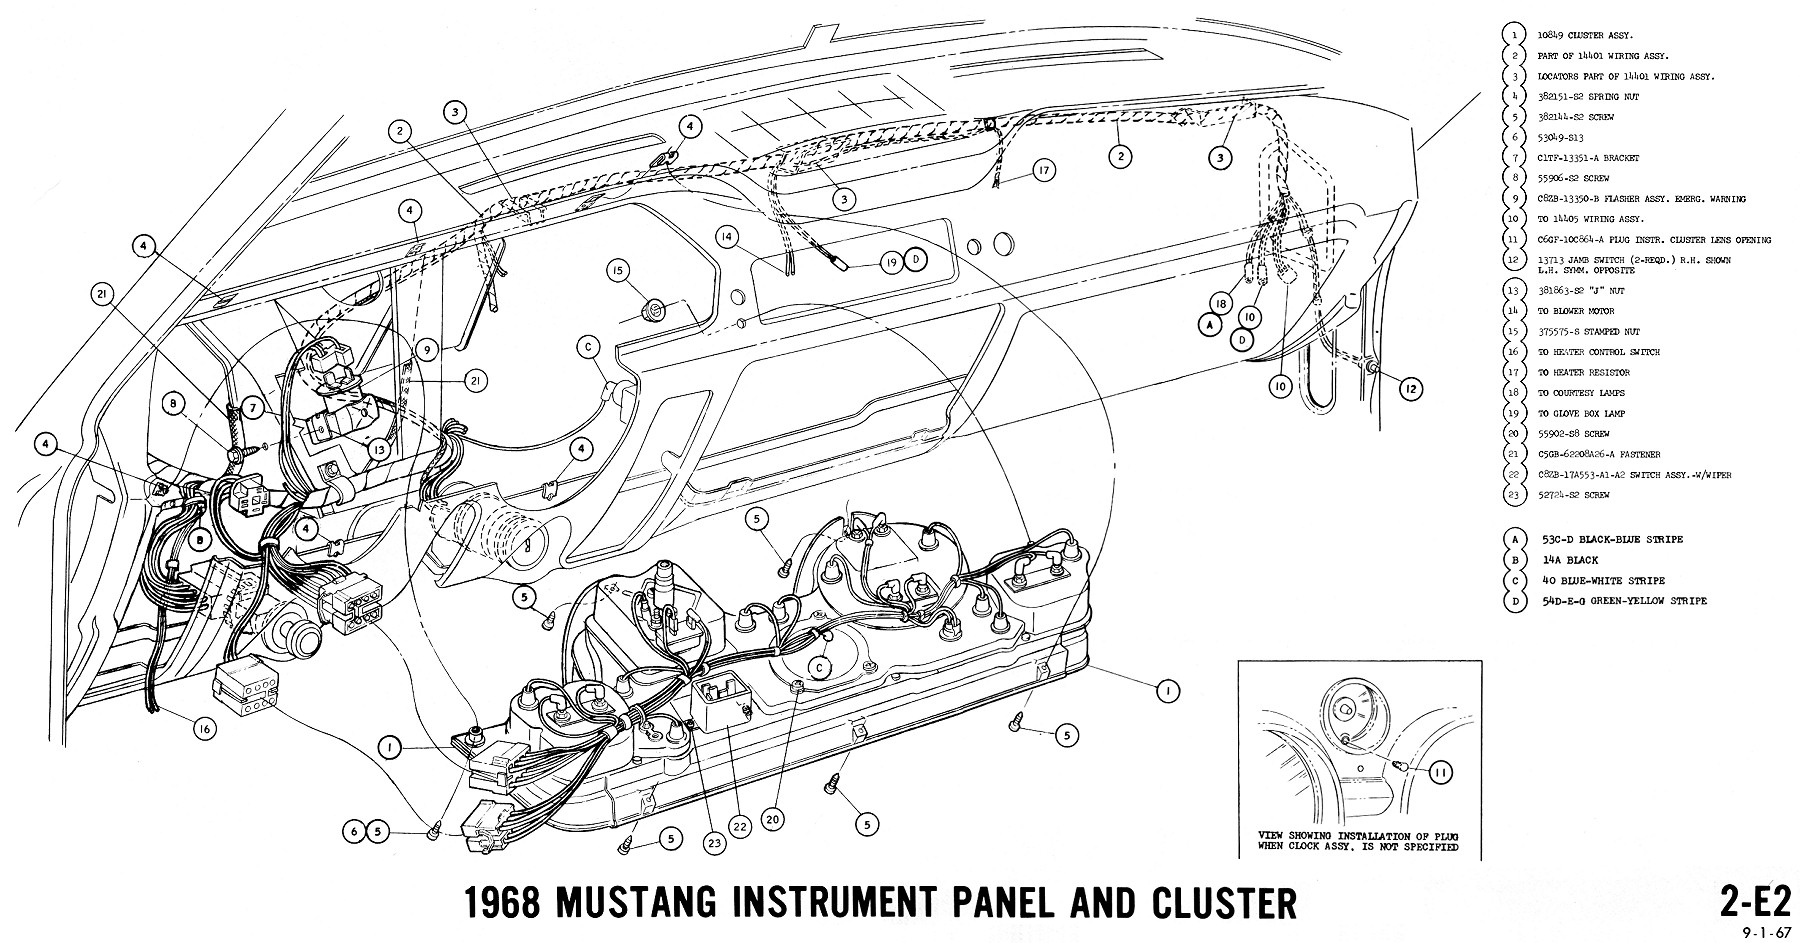 Mustang Cluster Wiring Schematic Free Printable Wiring Diagrams Database